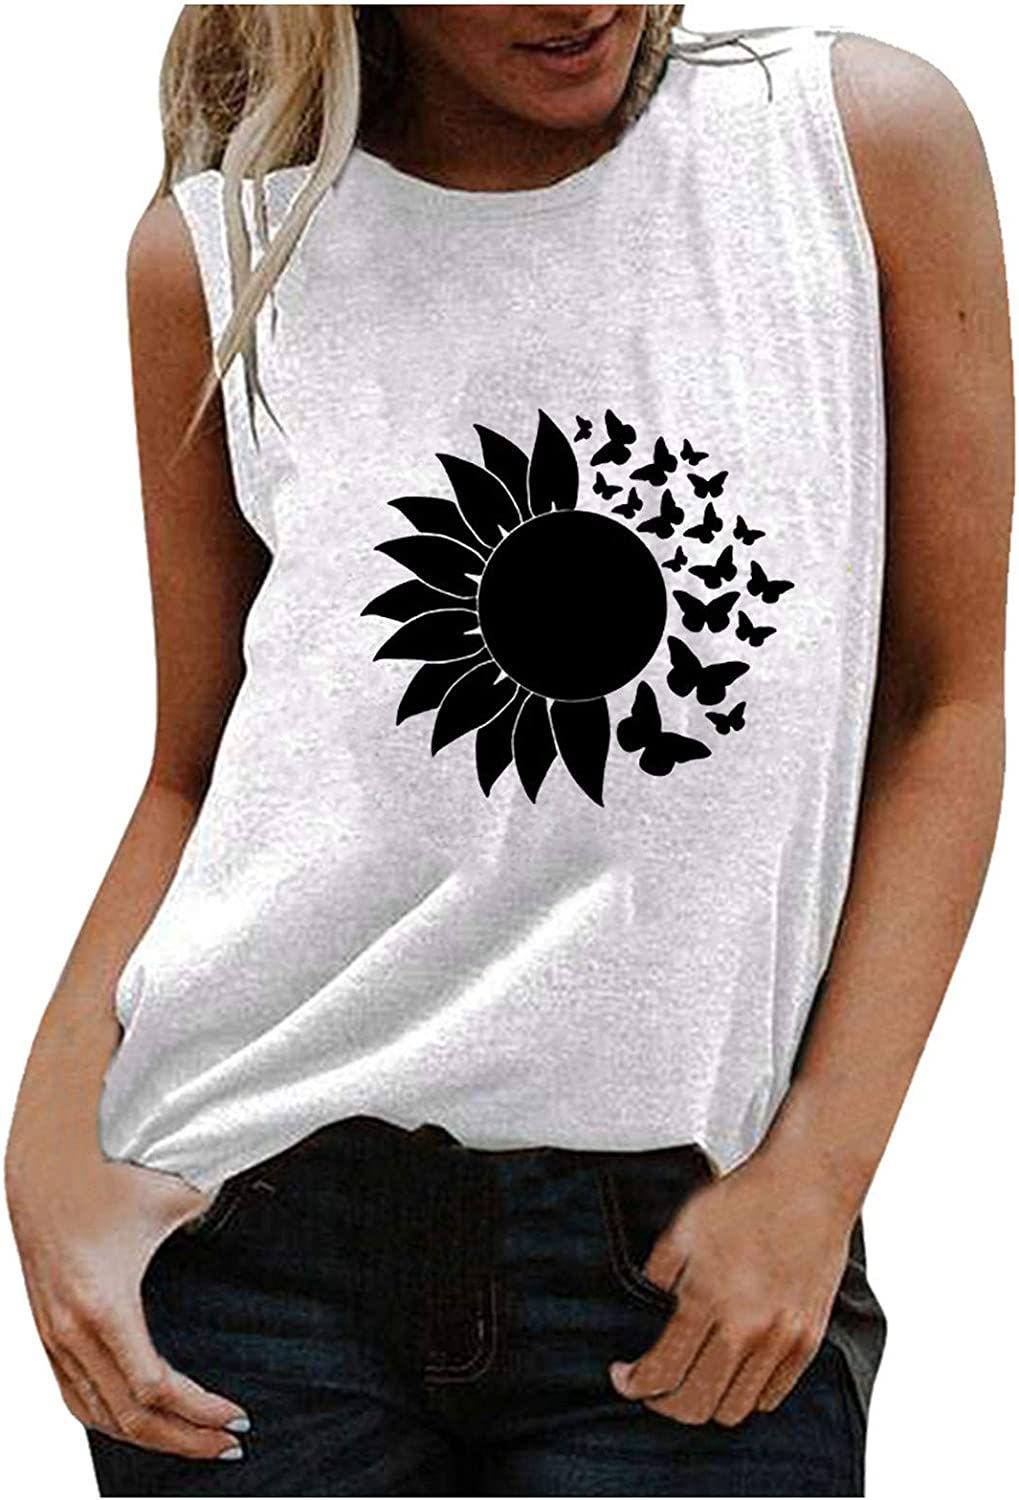 AODONG Tank Tops for Women, Womens Summer Casual Fashion Printed Sleeveless Loose Fit Vest Tshirt Tunic Tee Blouse Tops